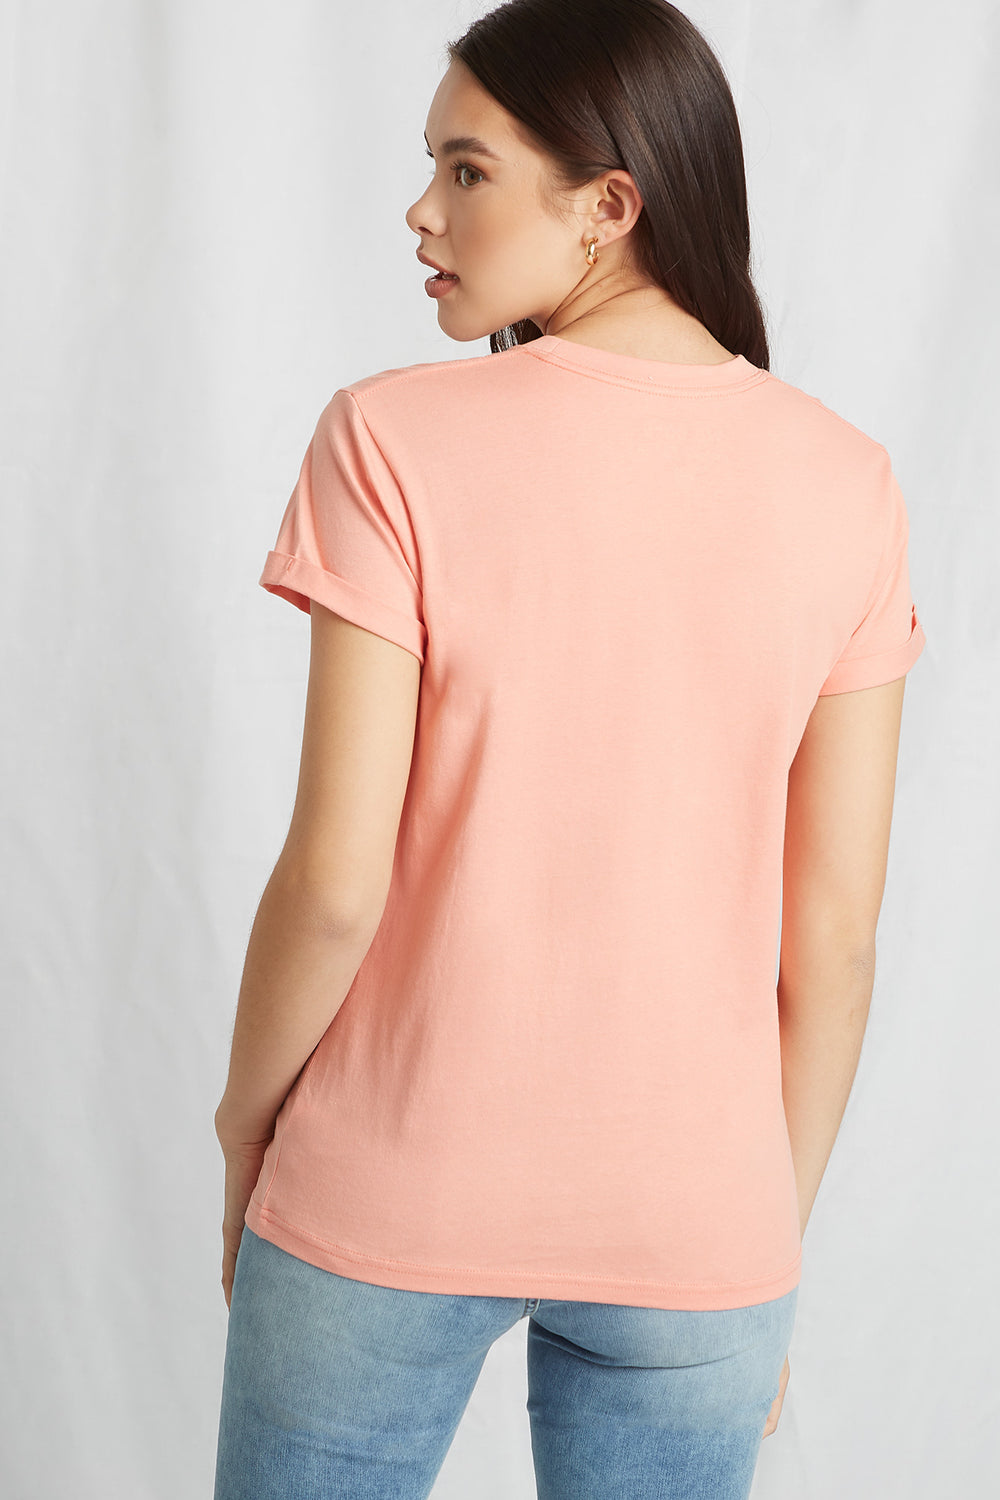 Eco-Friendly Graphic Organic Cotton T-Shirt Pink